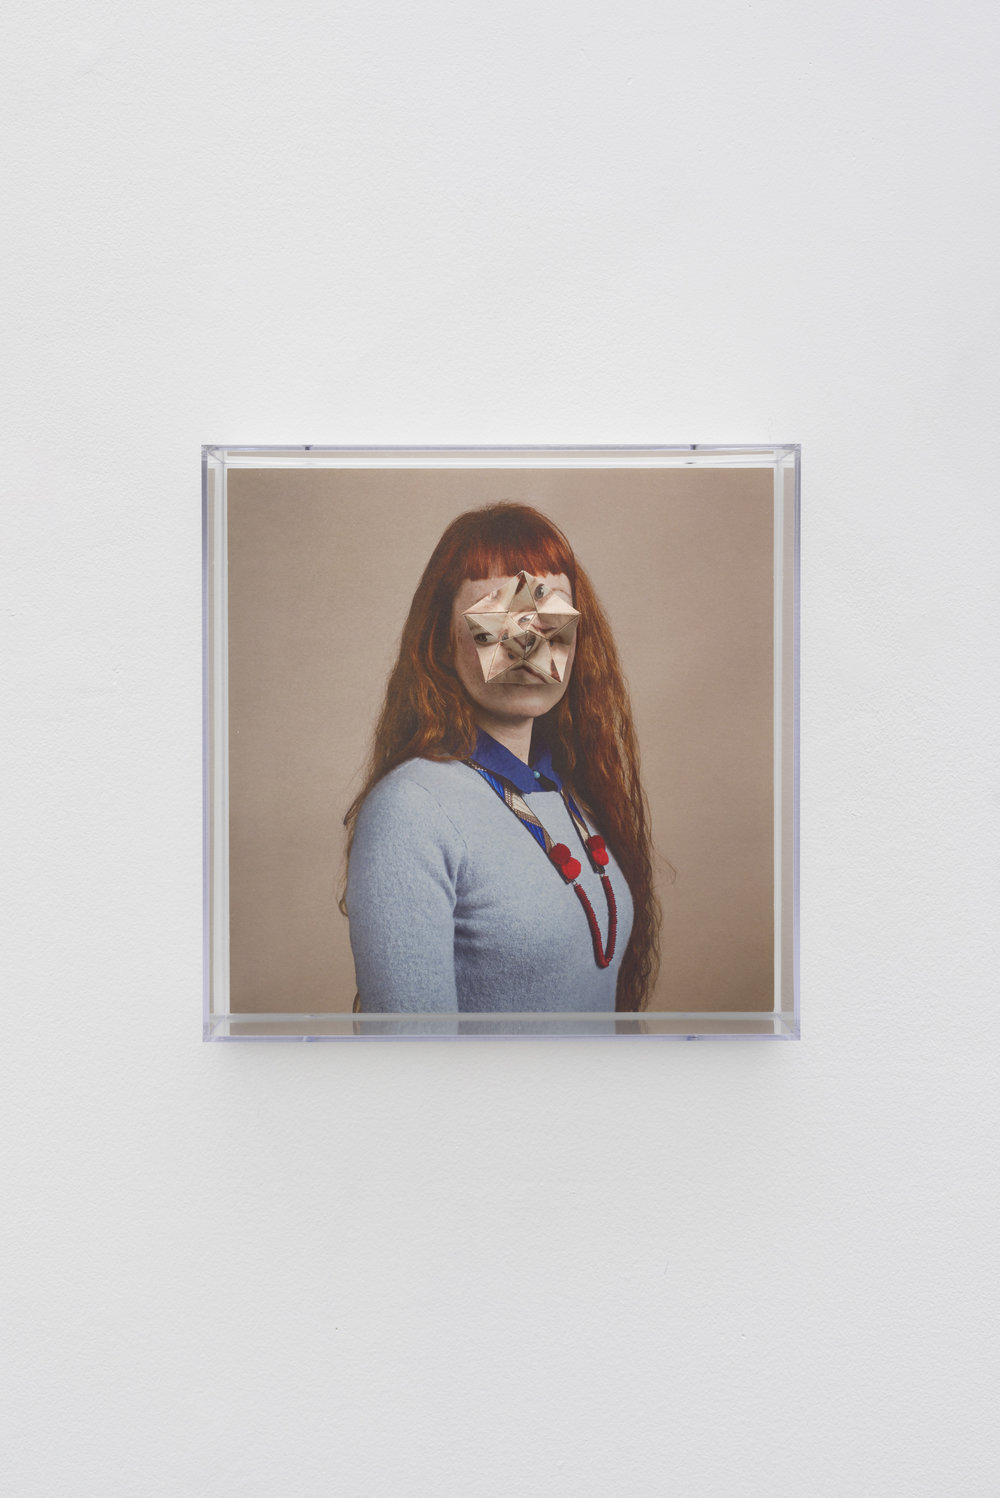 Alma Haser,  Patient No. 36 HD (Zoniel) , 2017  Digital pigment print with folded digital pigment print sculpture, plexiglass box, 30 x 30 x 10 cm (approx. 12 x 12 x 4 in), edition of 5   Inquire